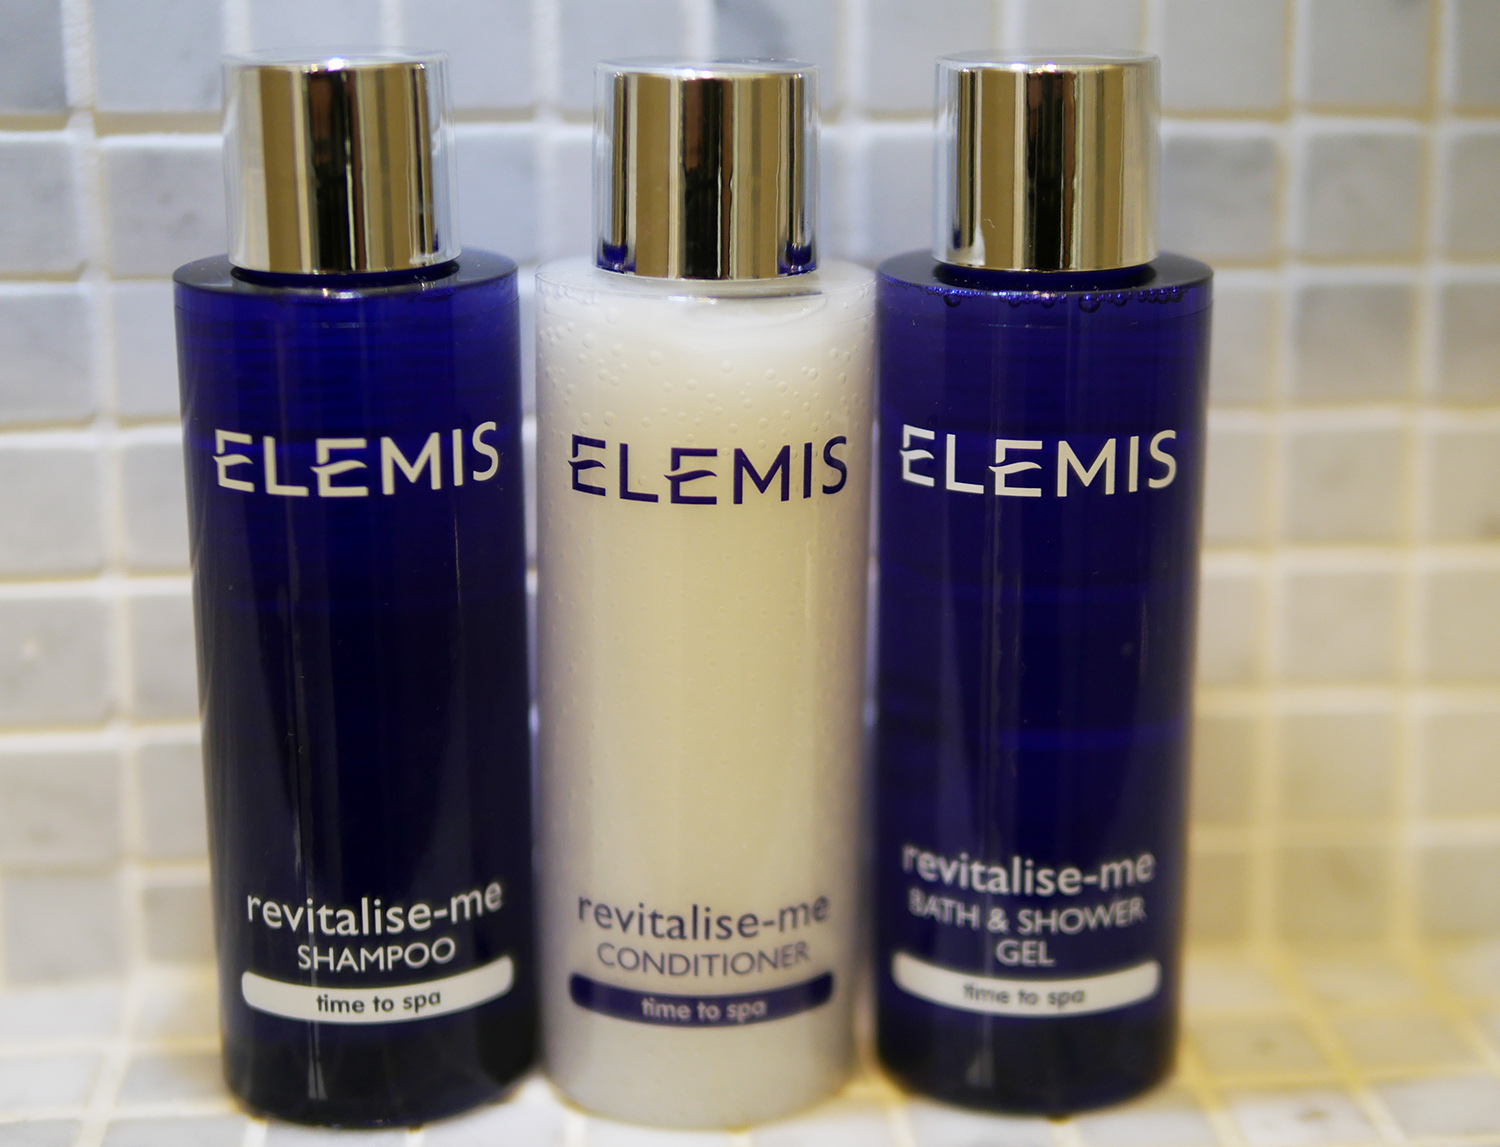 Elemis Toiletries - Calabash Grenada